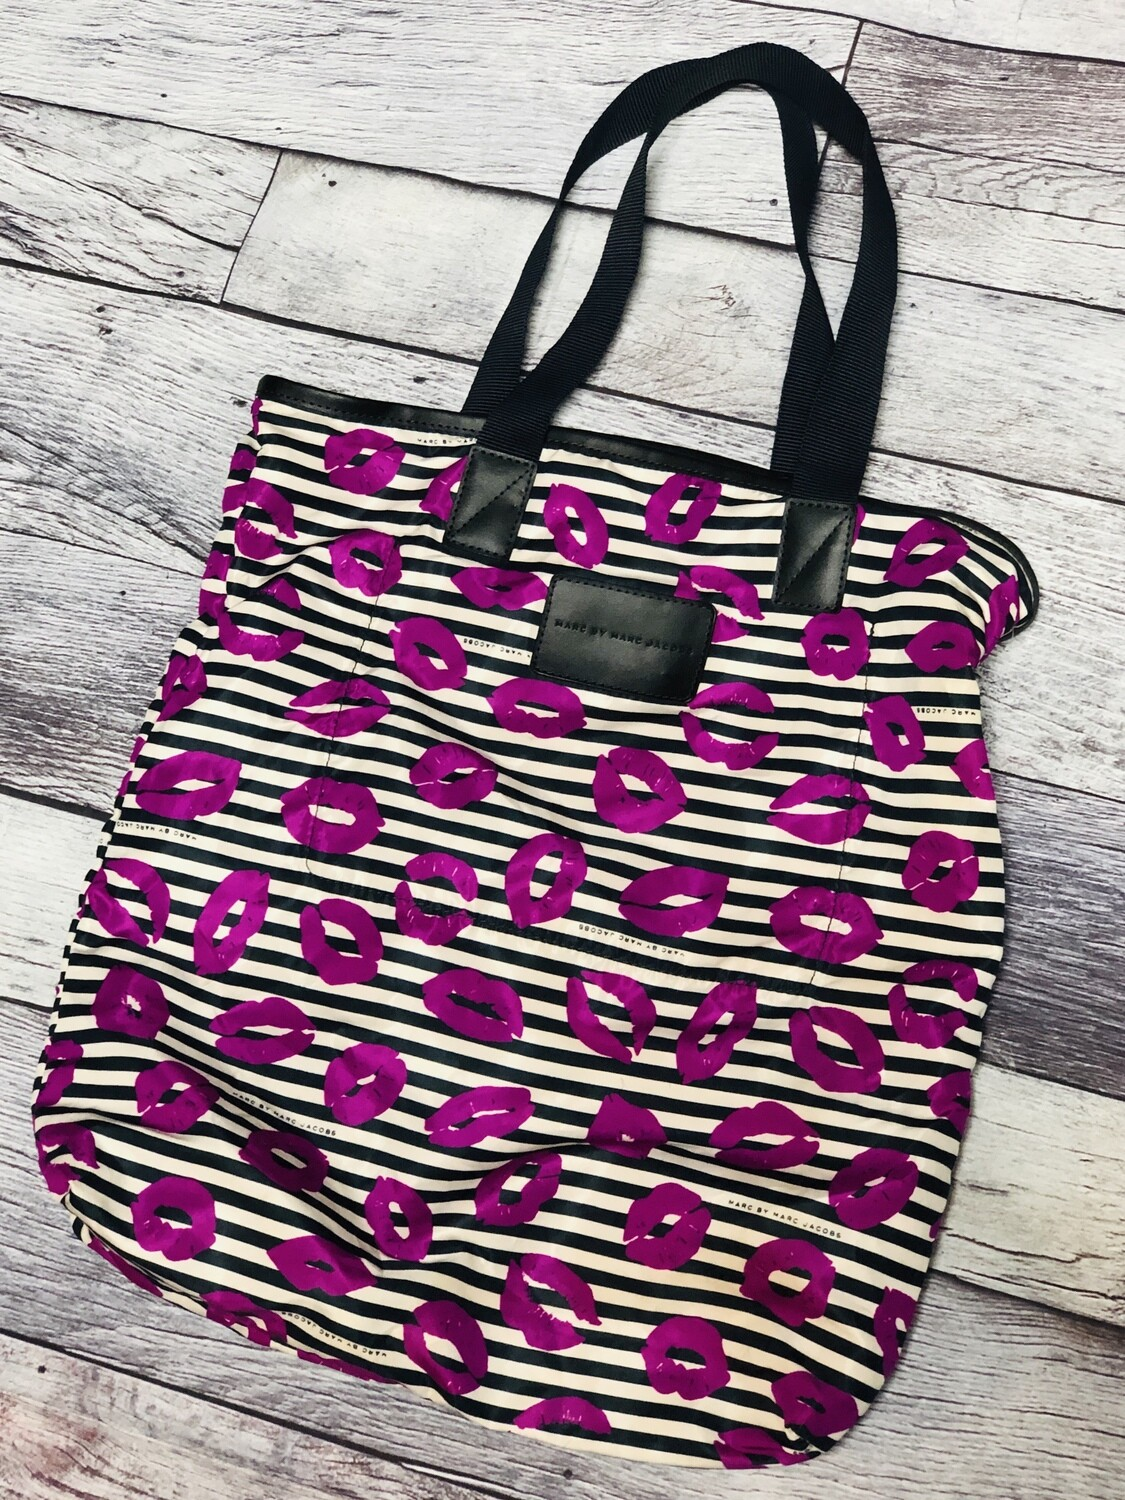 """Marc by MARC JACOBS """"LIPS"""" Nylon Tote Bag"""